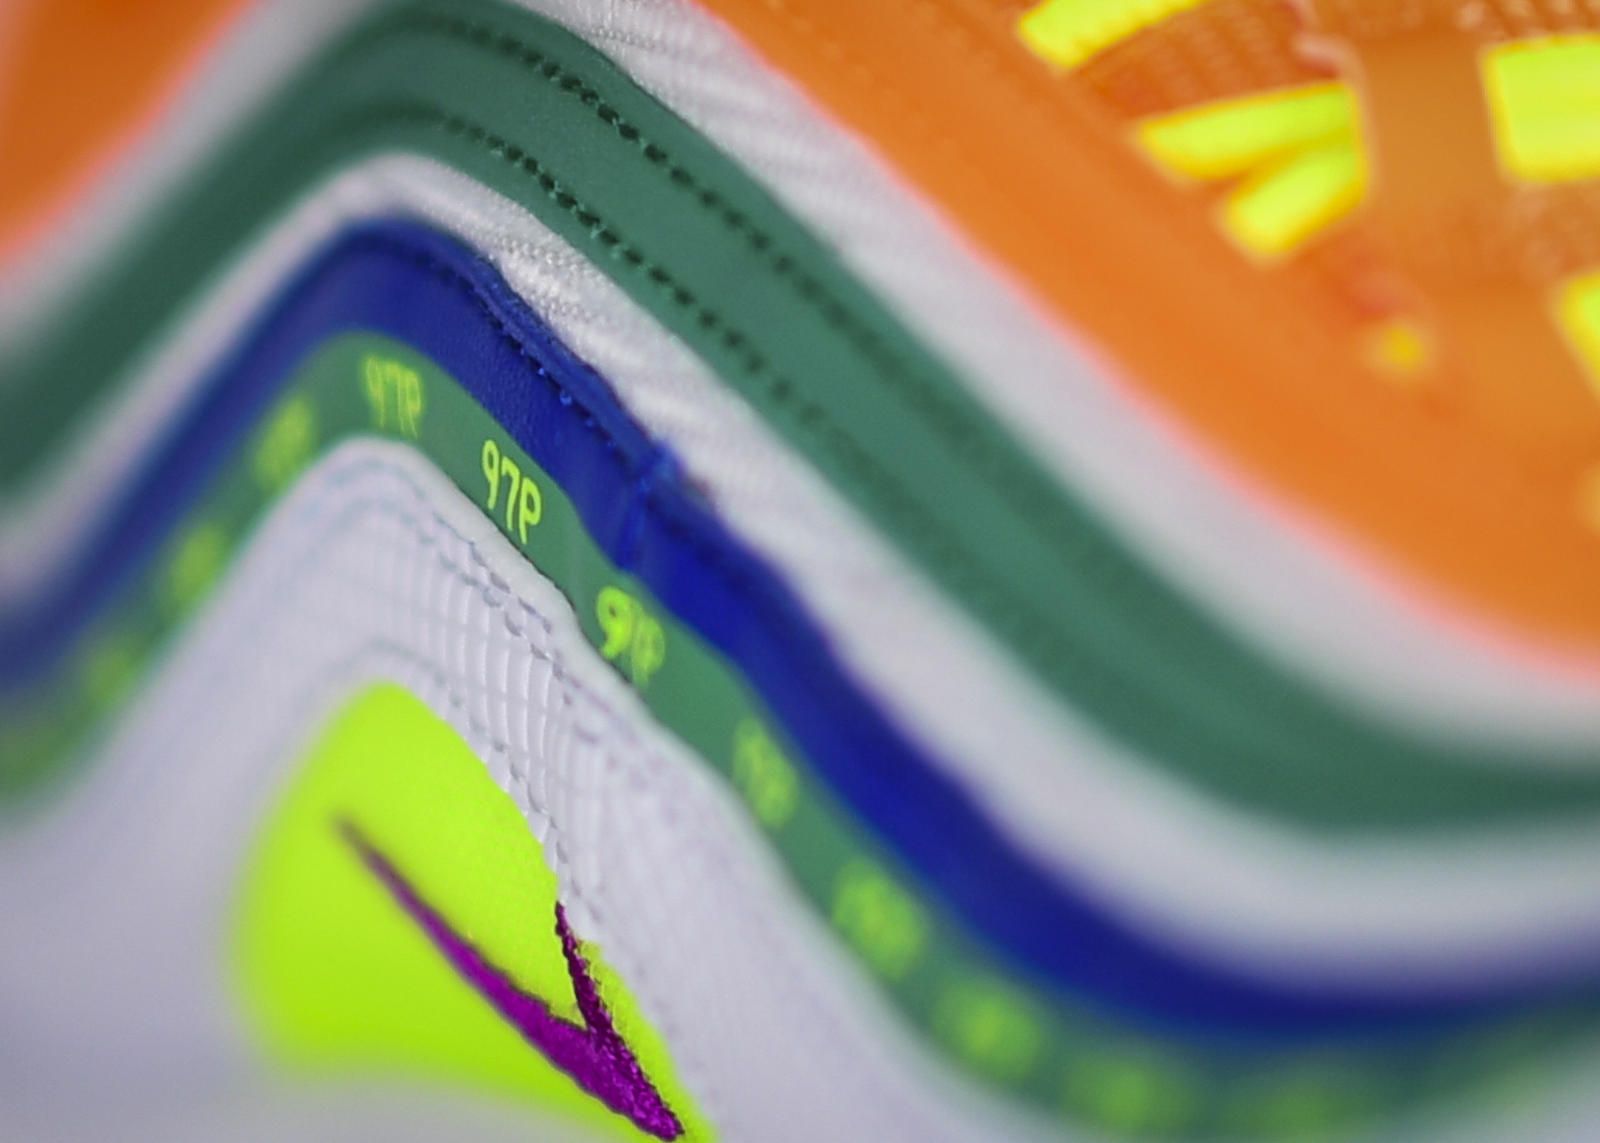 promo code a98fe 16364 Here are the Final Designs of the Nike  On Air Winners  Mock Draft,.  Lasode s Nike Air Max 97 London Summer of Love ...